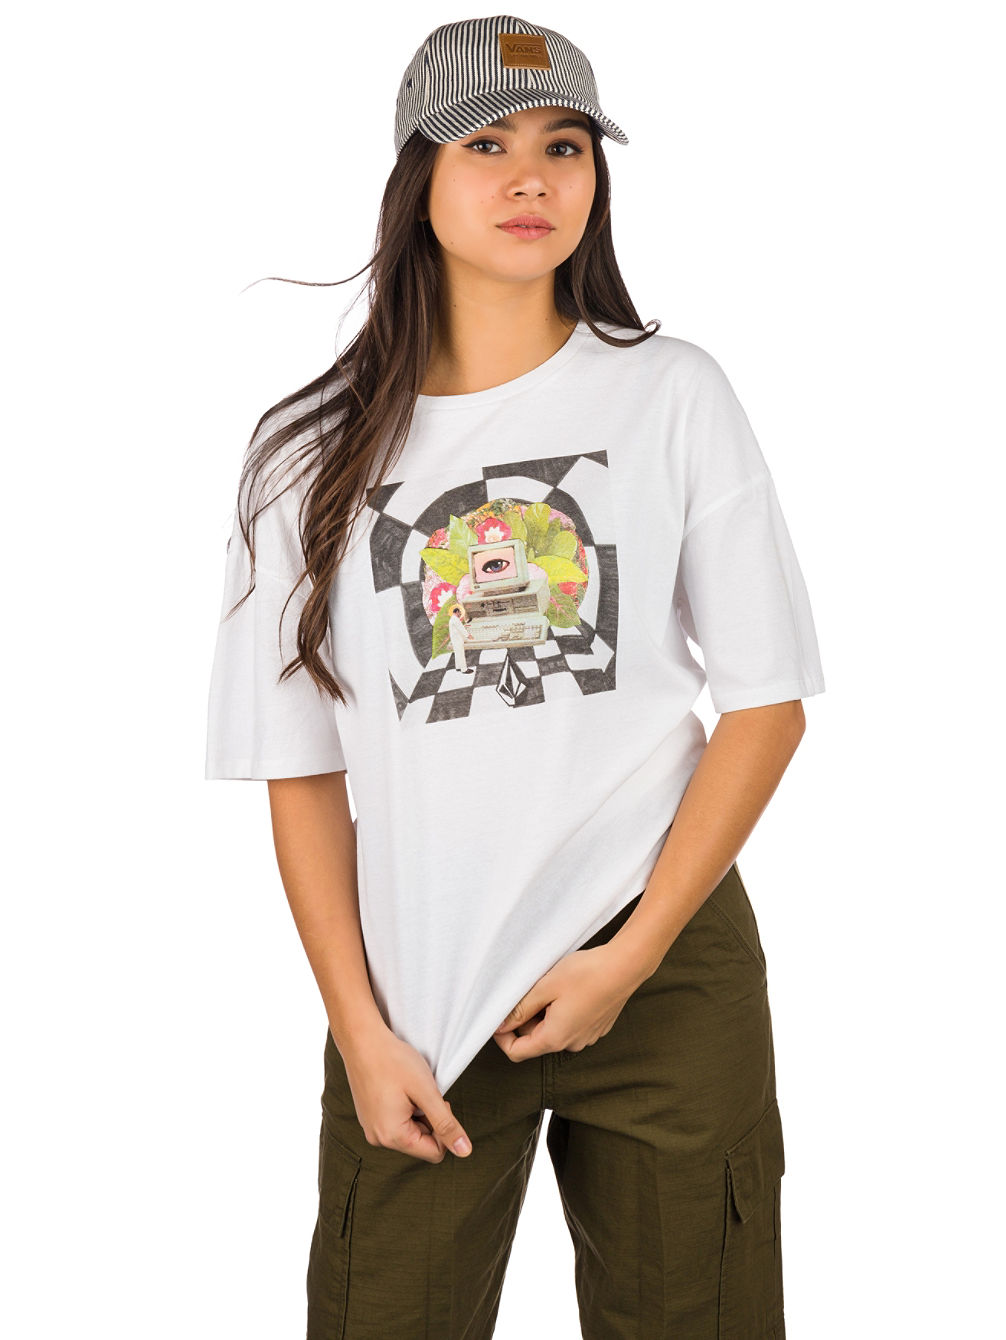 Schnipps Featured Artist T-Shirt